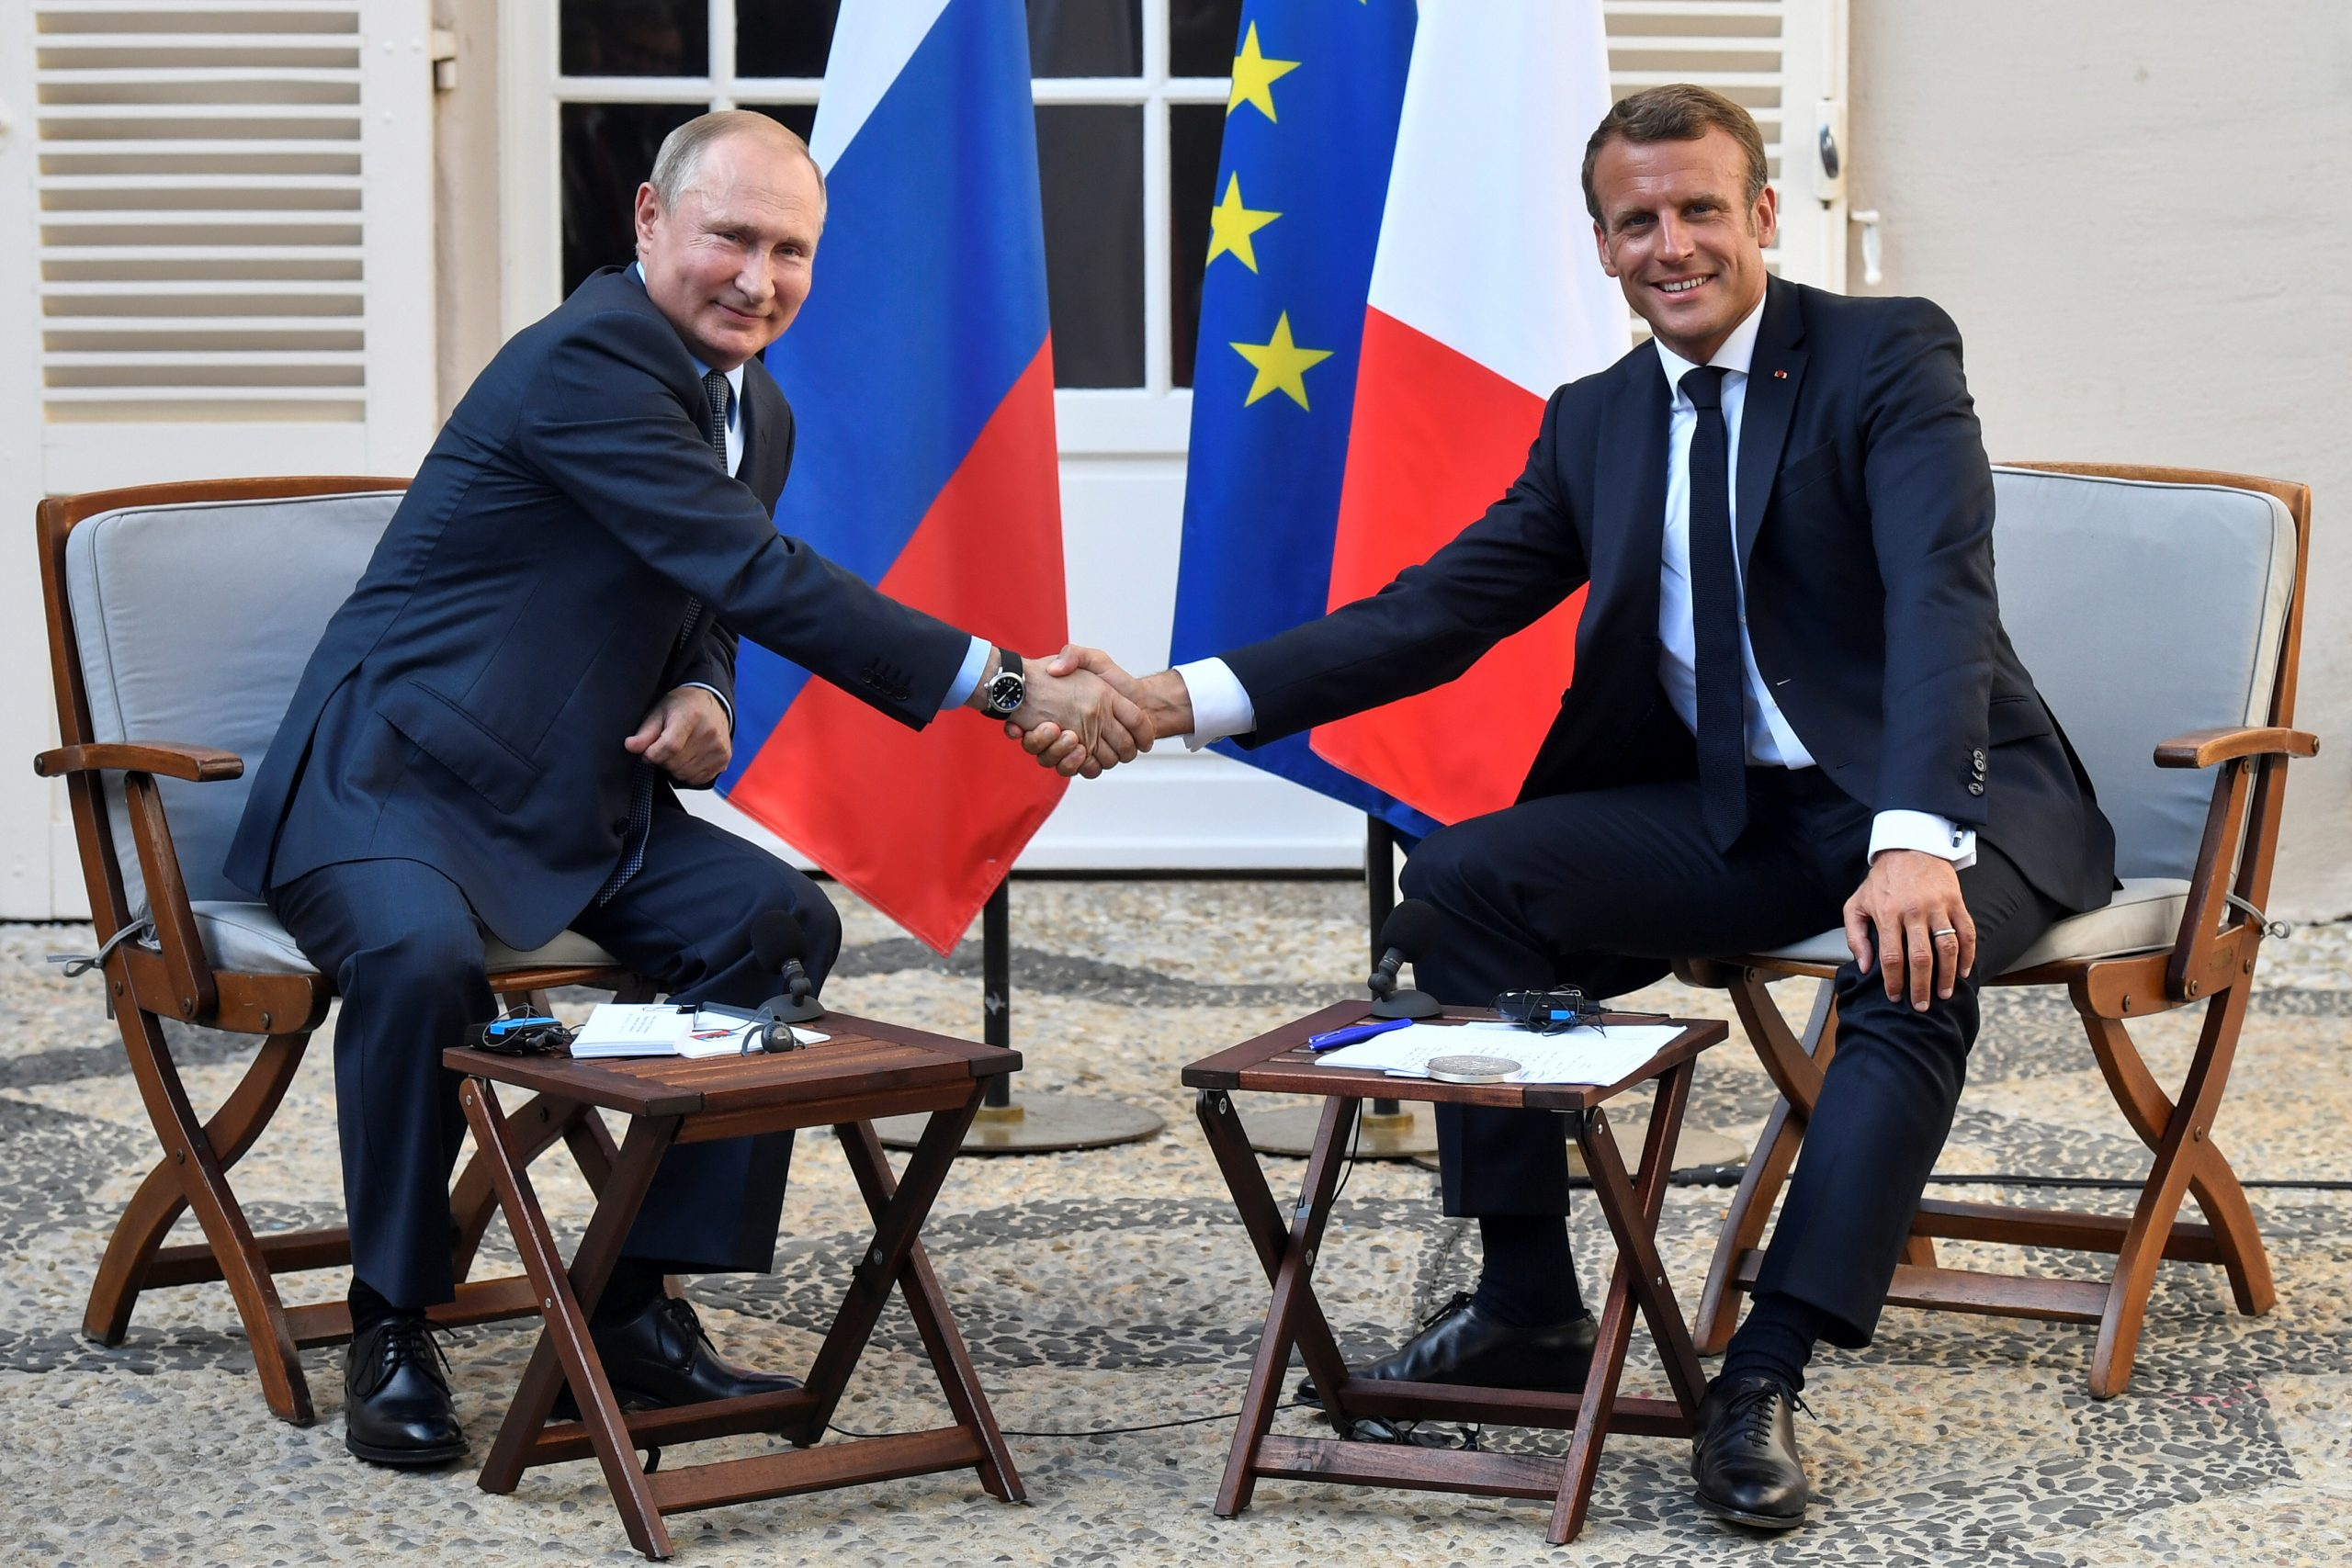 The shadow of Munich hangs over Russia-Ukraine Paris peace talks - Atlantic Council